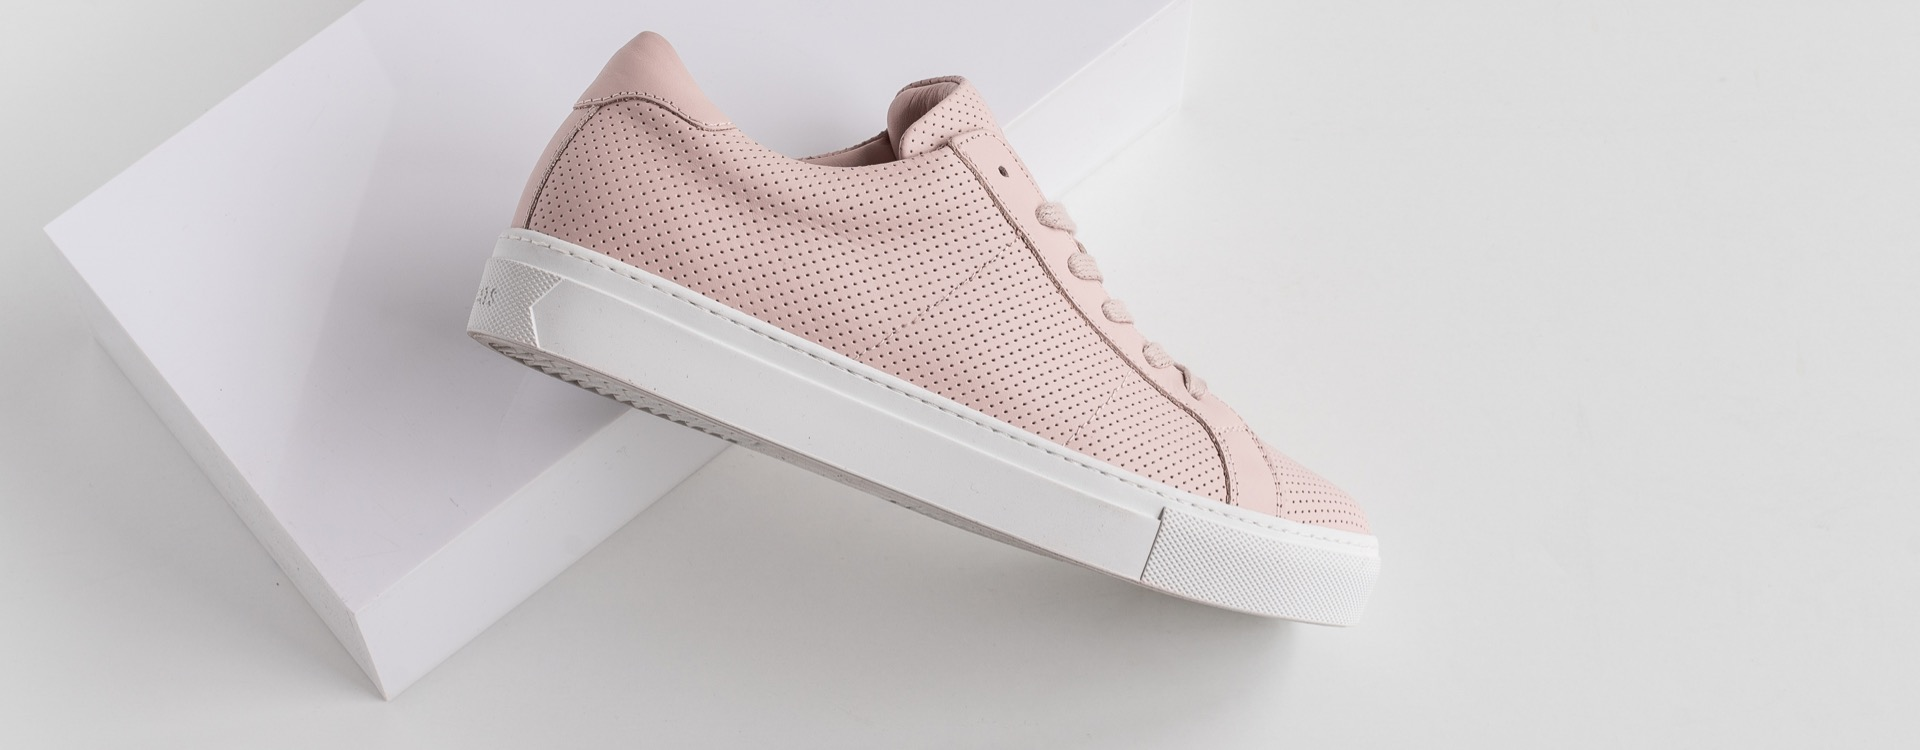 The Royale Perforated - Shop Now